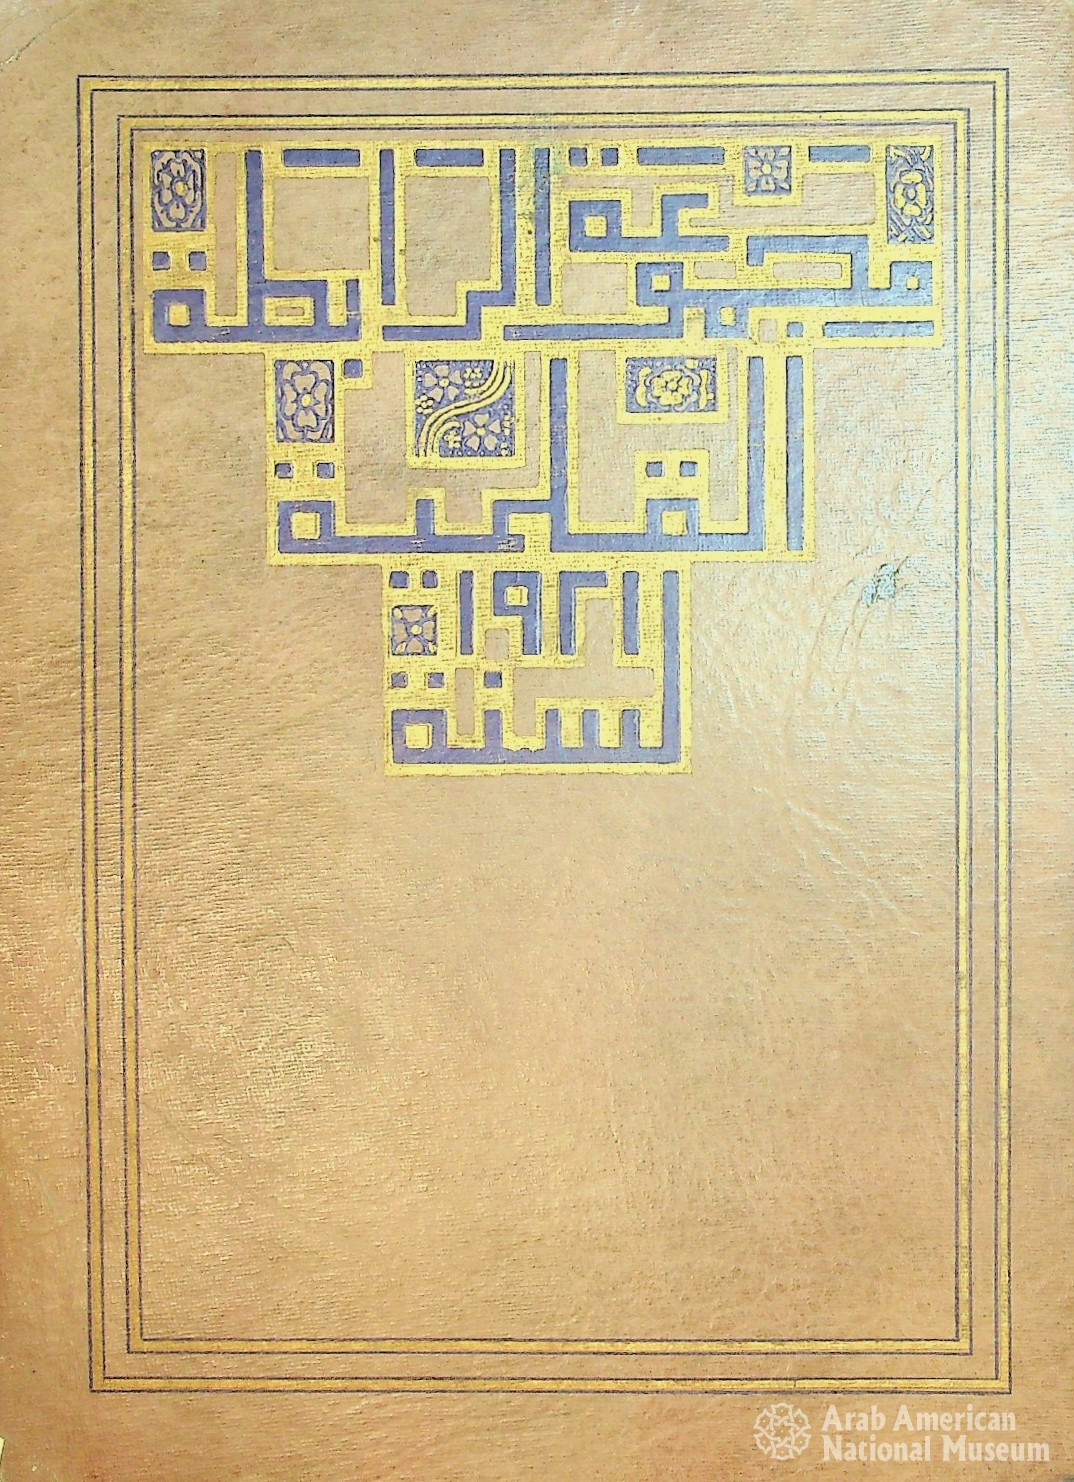 Majmūʻat al-Rābiṭah al-Qalamiyyah li-Sanat 1921 (The Collection of the Pen Bond for the Year 1921), New York, 1921.